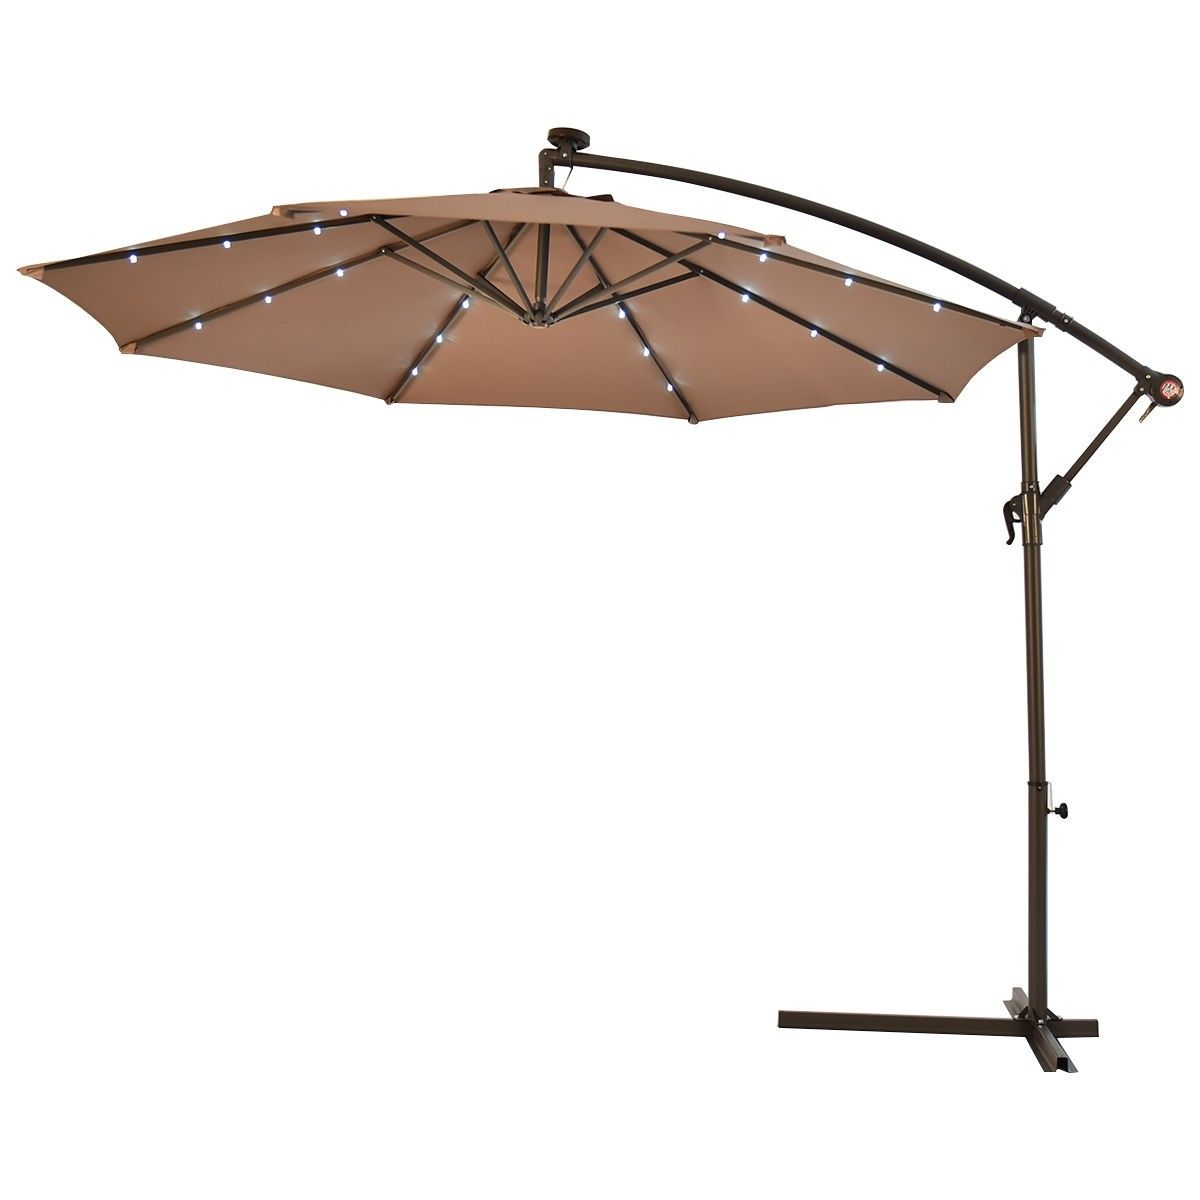 10 Patio Hanging Umbrella Sun Shade With Solar Led Lights Patio Umbrella Lights Large Patio Umbrellas Patio Umbrellas